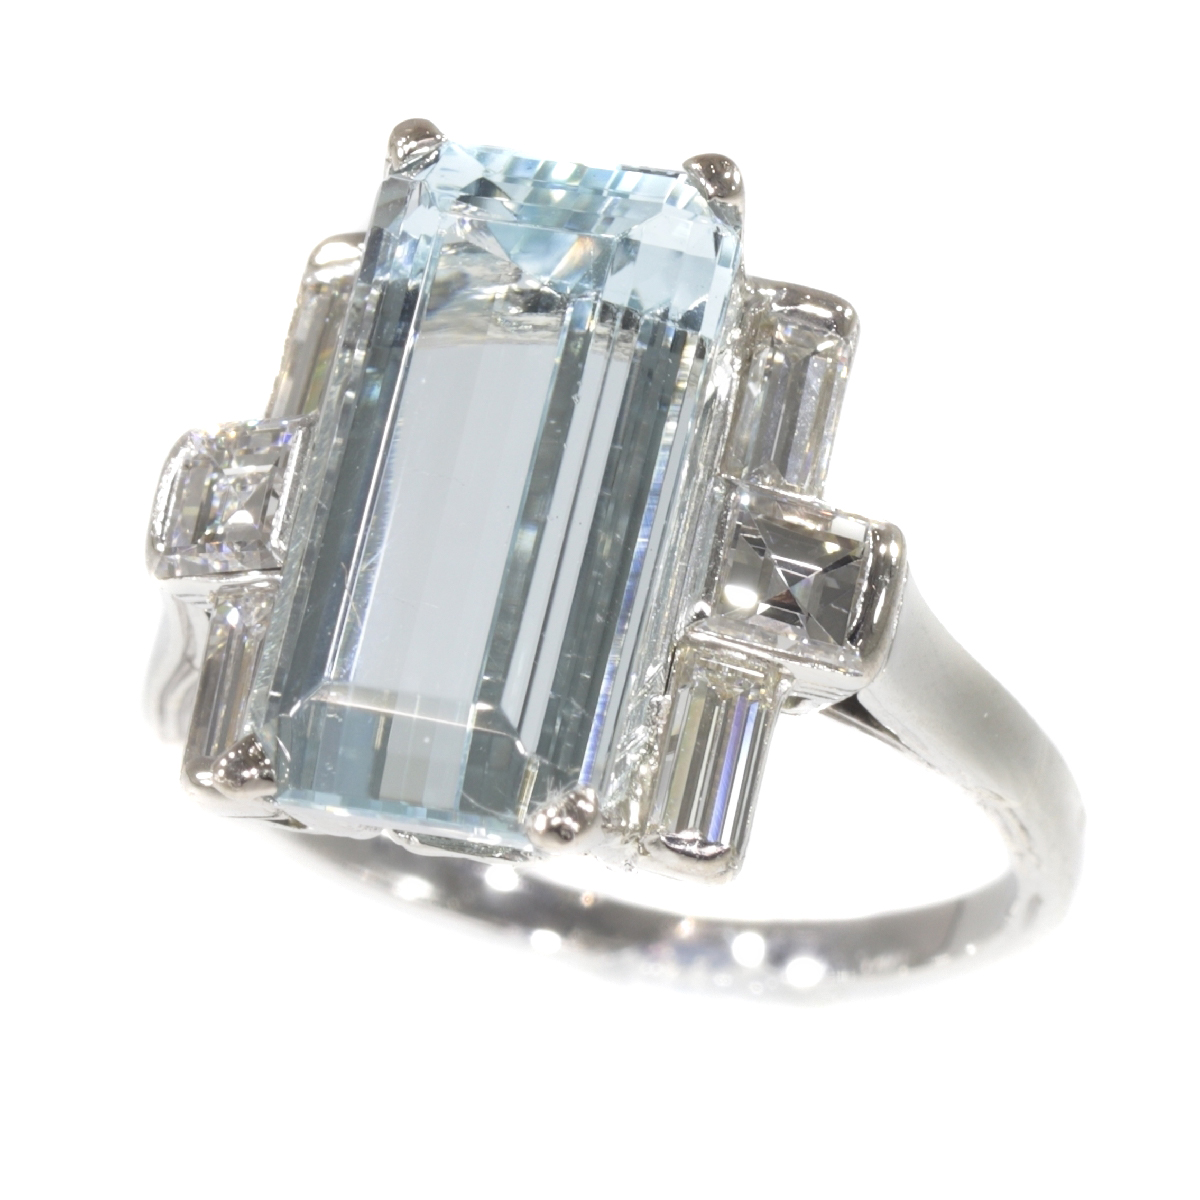 Vintage Fifties design white gold ring with aquamarine and diamonds